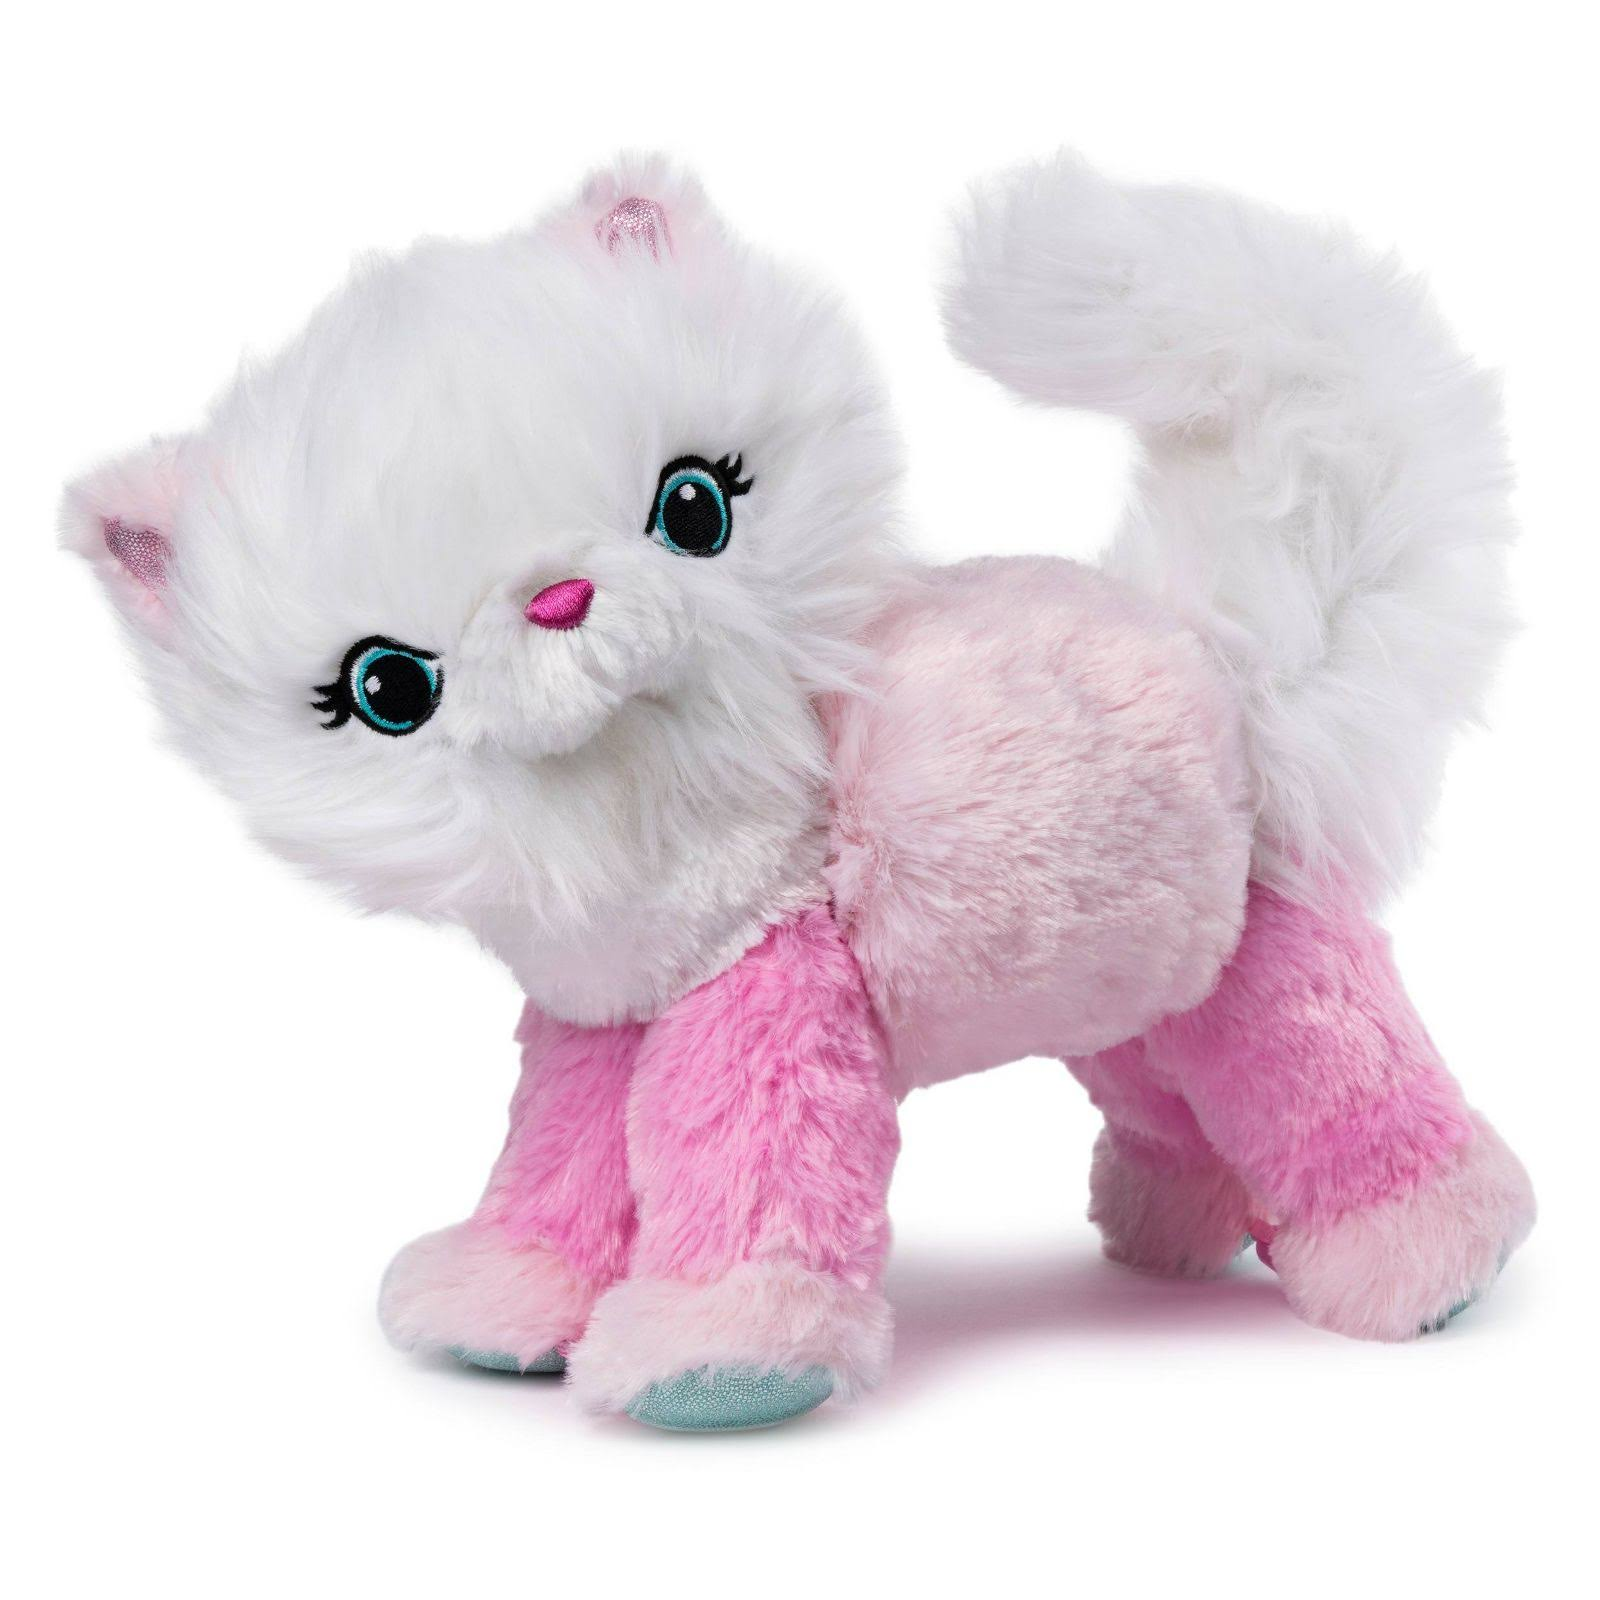 Twisty Petz Cuddlez Purrella Kitty Transforming Collectible Plush for Kids Aged 4 and Up